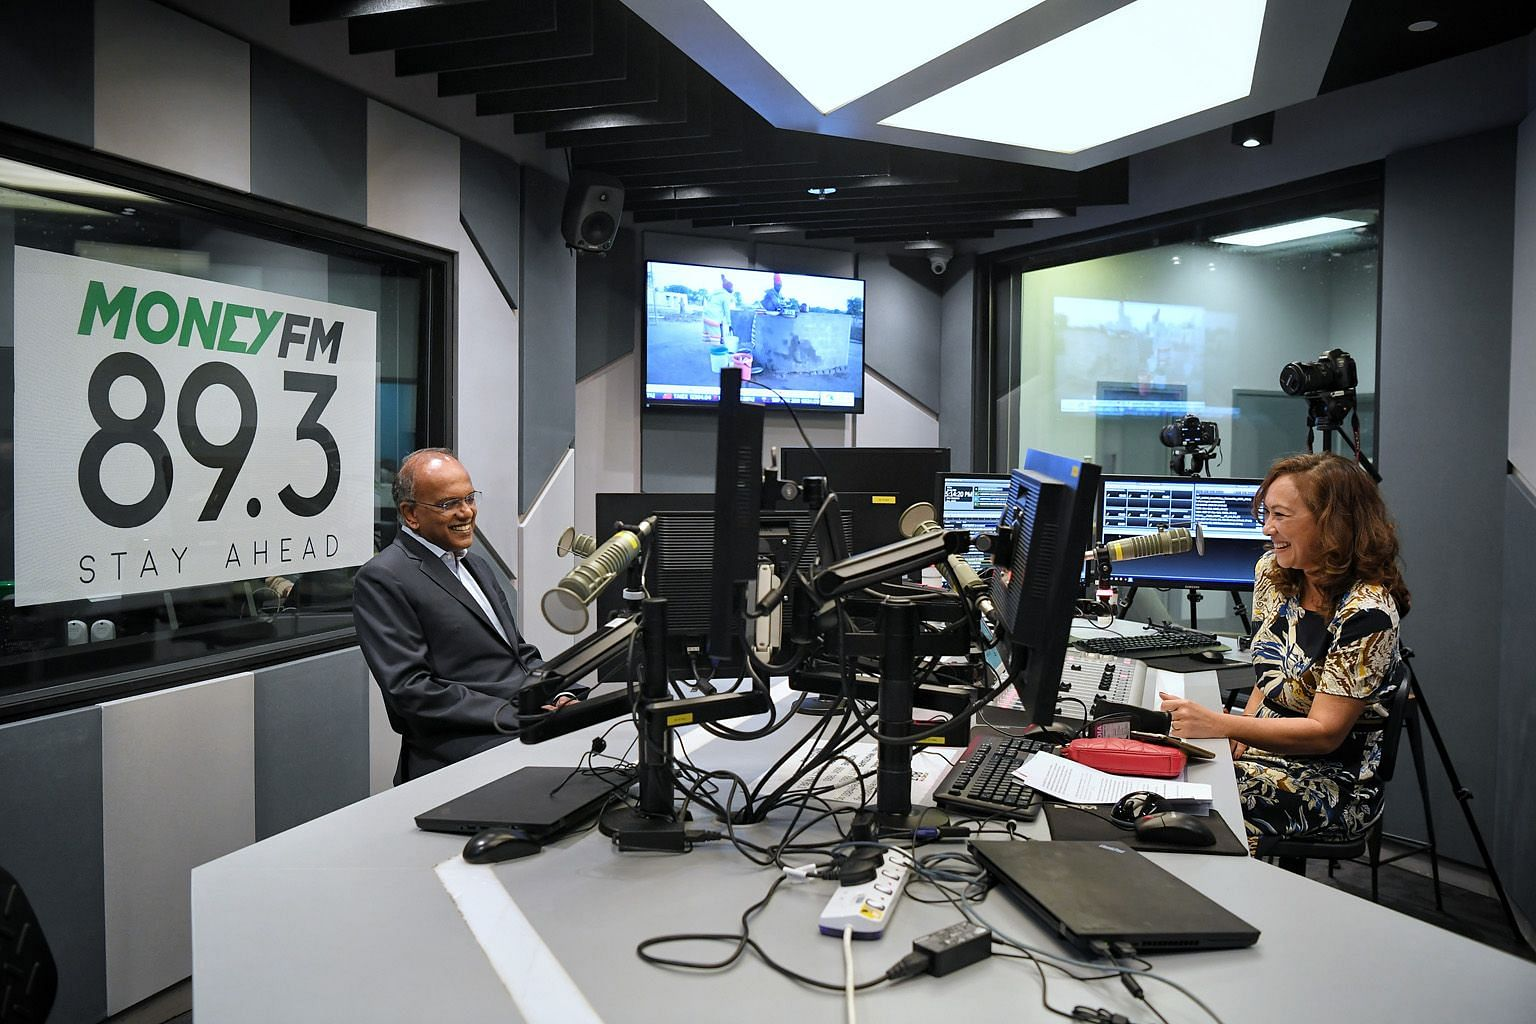 Law and Home Affairs Minister K. Shanmugam with Money FM 89.3 DJ Claressa Monteiro during the interview that was broadcast yesterday. In the conversation billed as a look at hard truths from GE2020, Mr Shanmugam said the PAP is keenly aware of voters